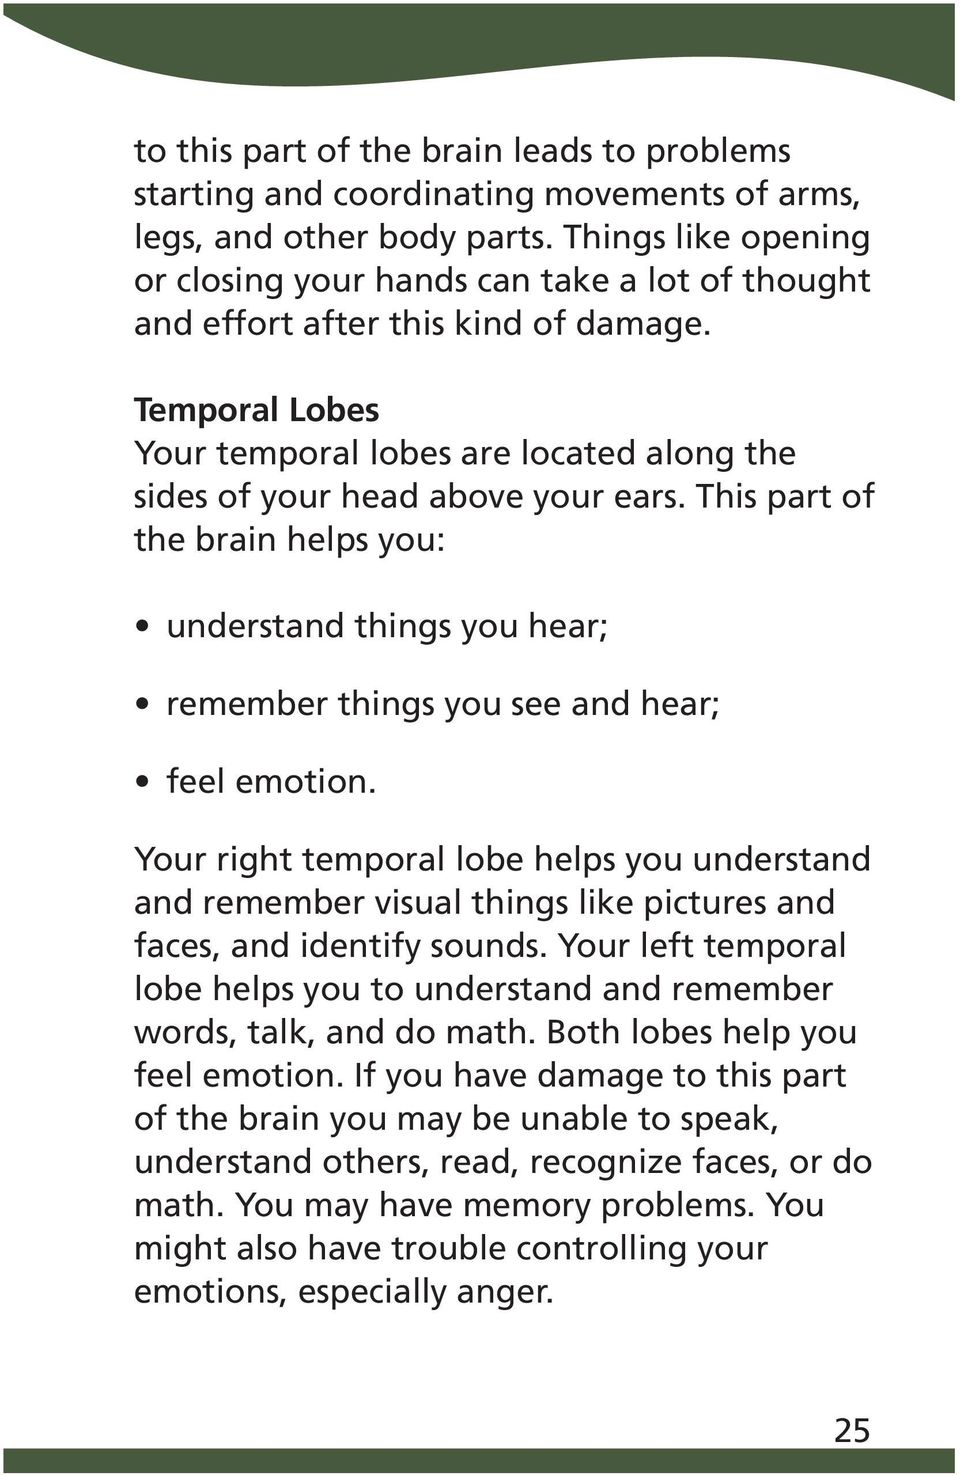 This part of the brain helps you: understand things you hear; remember things you see and hear; feel emotion.